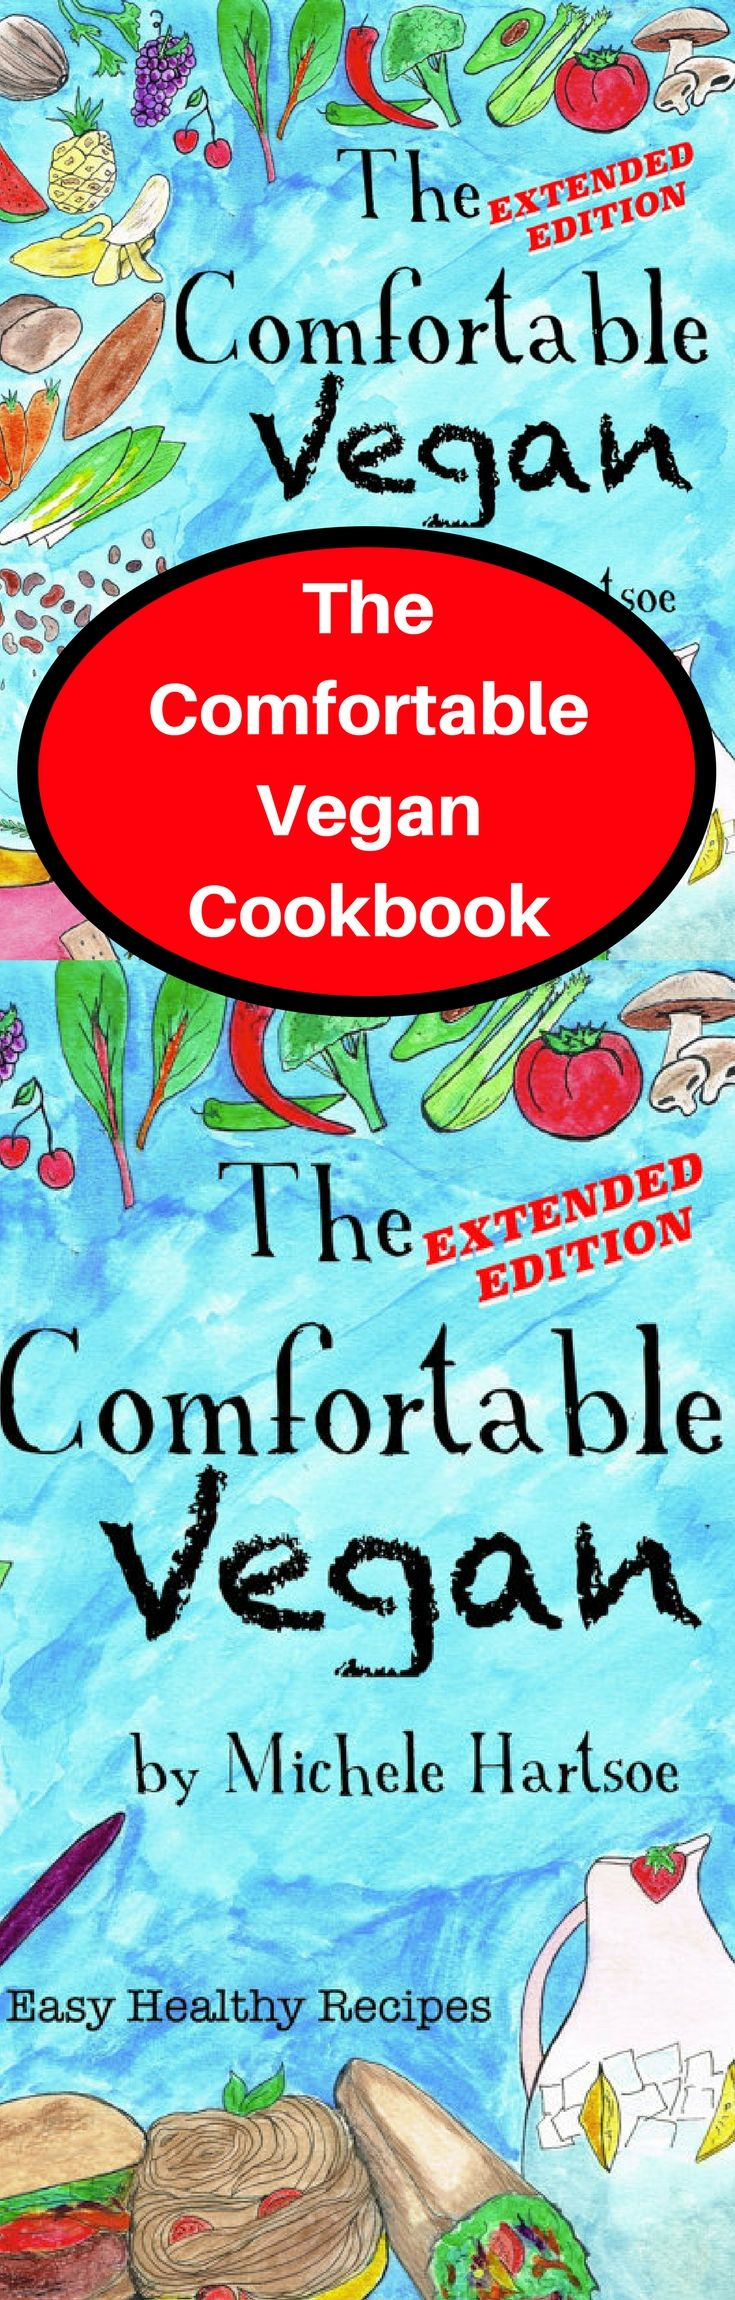 The Comfortable Vegan Cookbook.The Comfortable Vegan is an Illustrated cookbook, familiar comforting veganized Recipes with Easy Tips and Information. What is THE COMFORTABLE VEGAN? It is an Illustrated introduction to being Vegan. It is a 73 page Color Vegan recipe, tips and information book. There will be more than 40 recipes with easy to follow fun colorful layouts. A lot of information pages talking about easy VEGAN substitutes, B-12, Protein, Omega, and Calcium sources, #veganfood #cook…